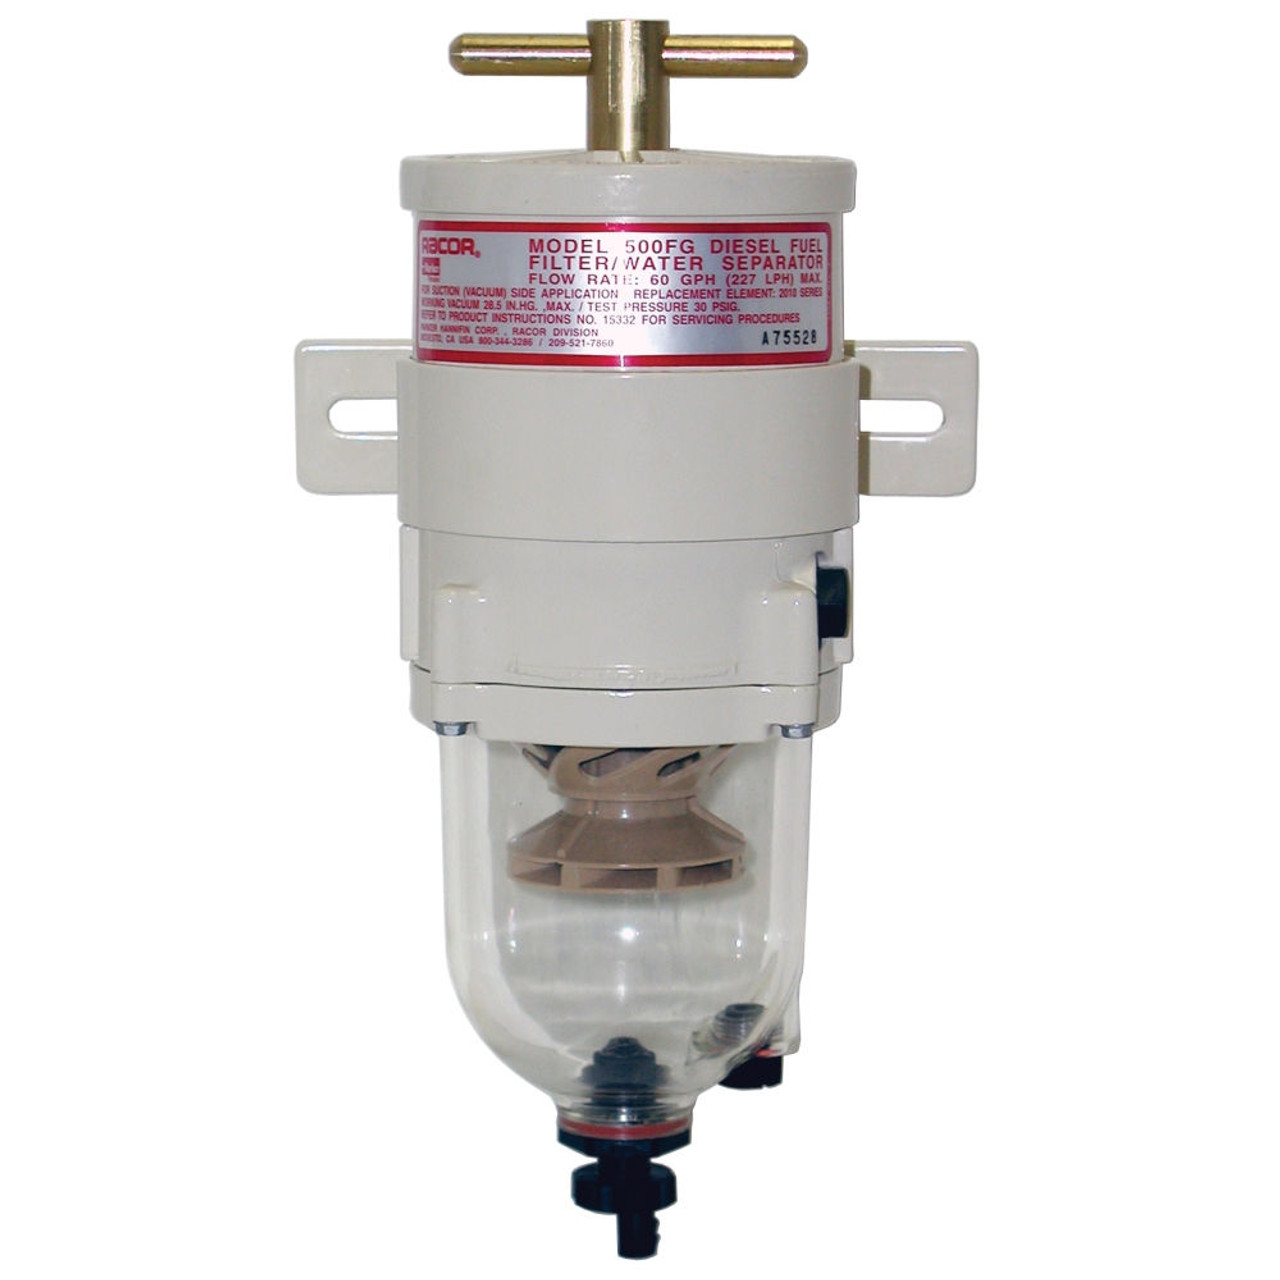 racor turbine series 60 gph fuel filter water separator 30 micron [ 1280 x 1280 Pixel ]